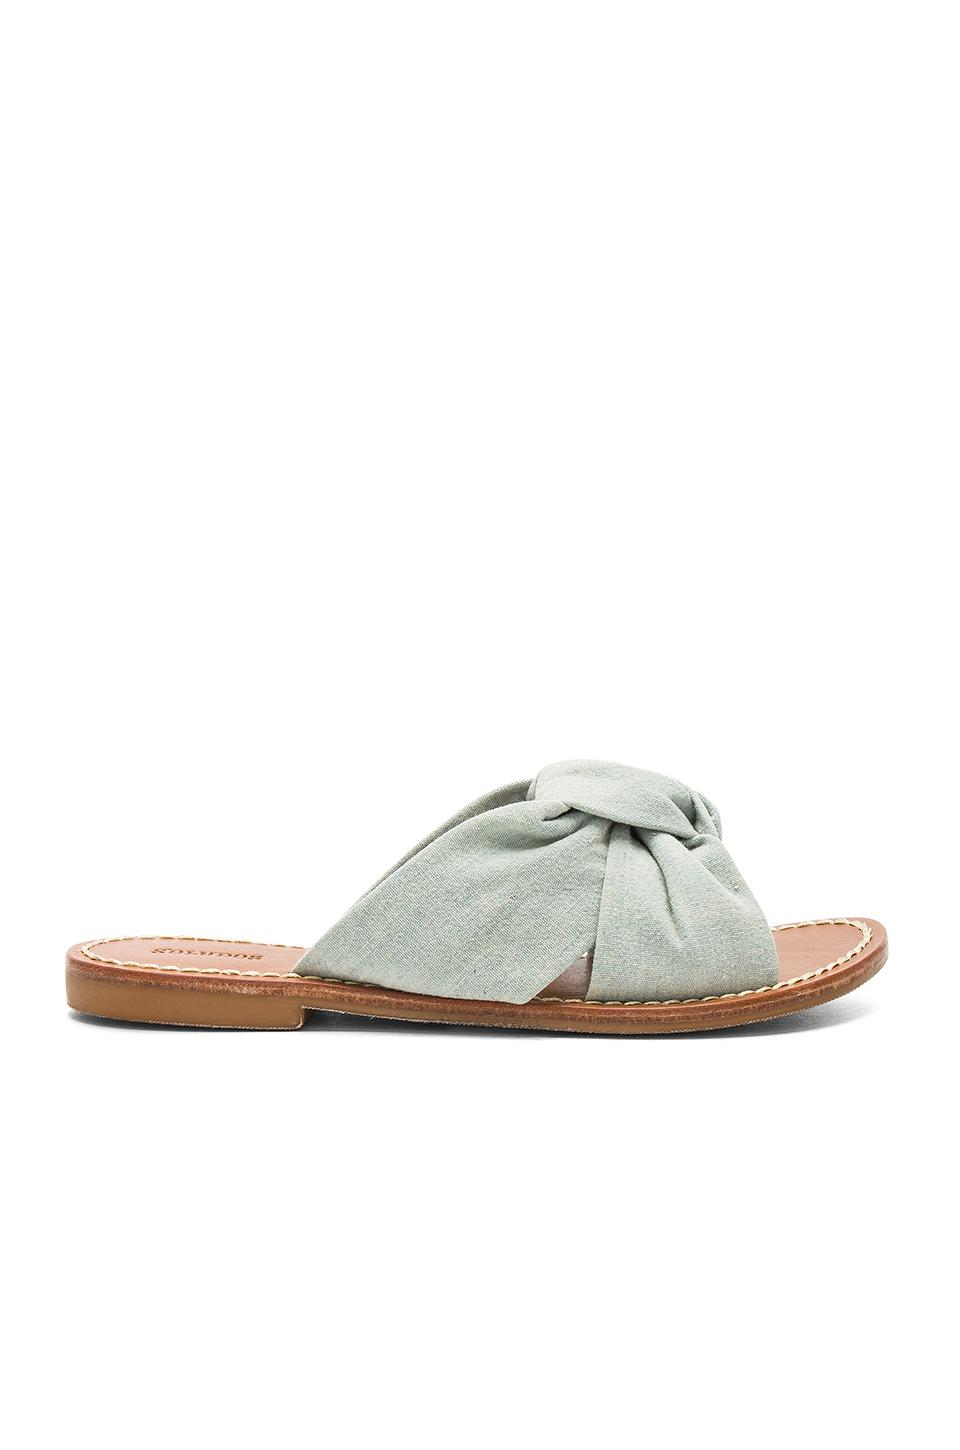 Soludos Knotted Slide Sandal In Chambray